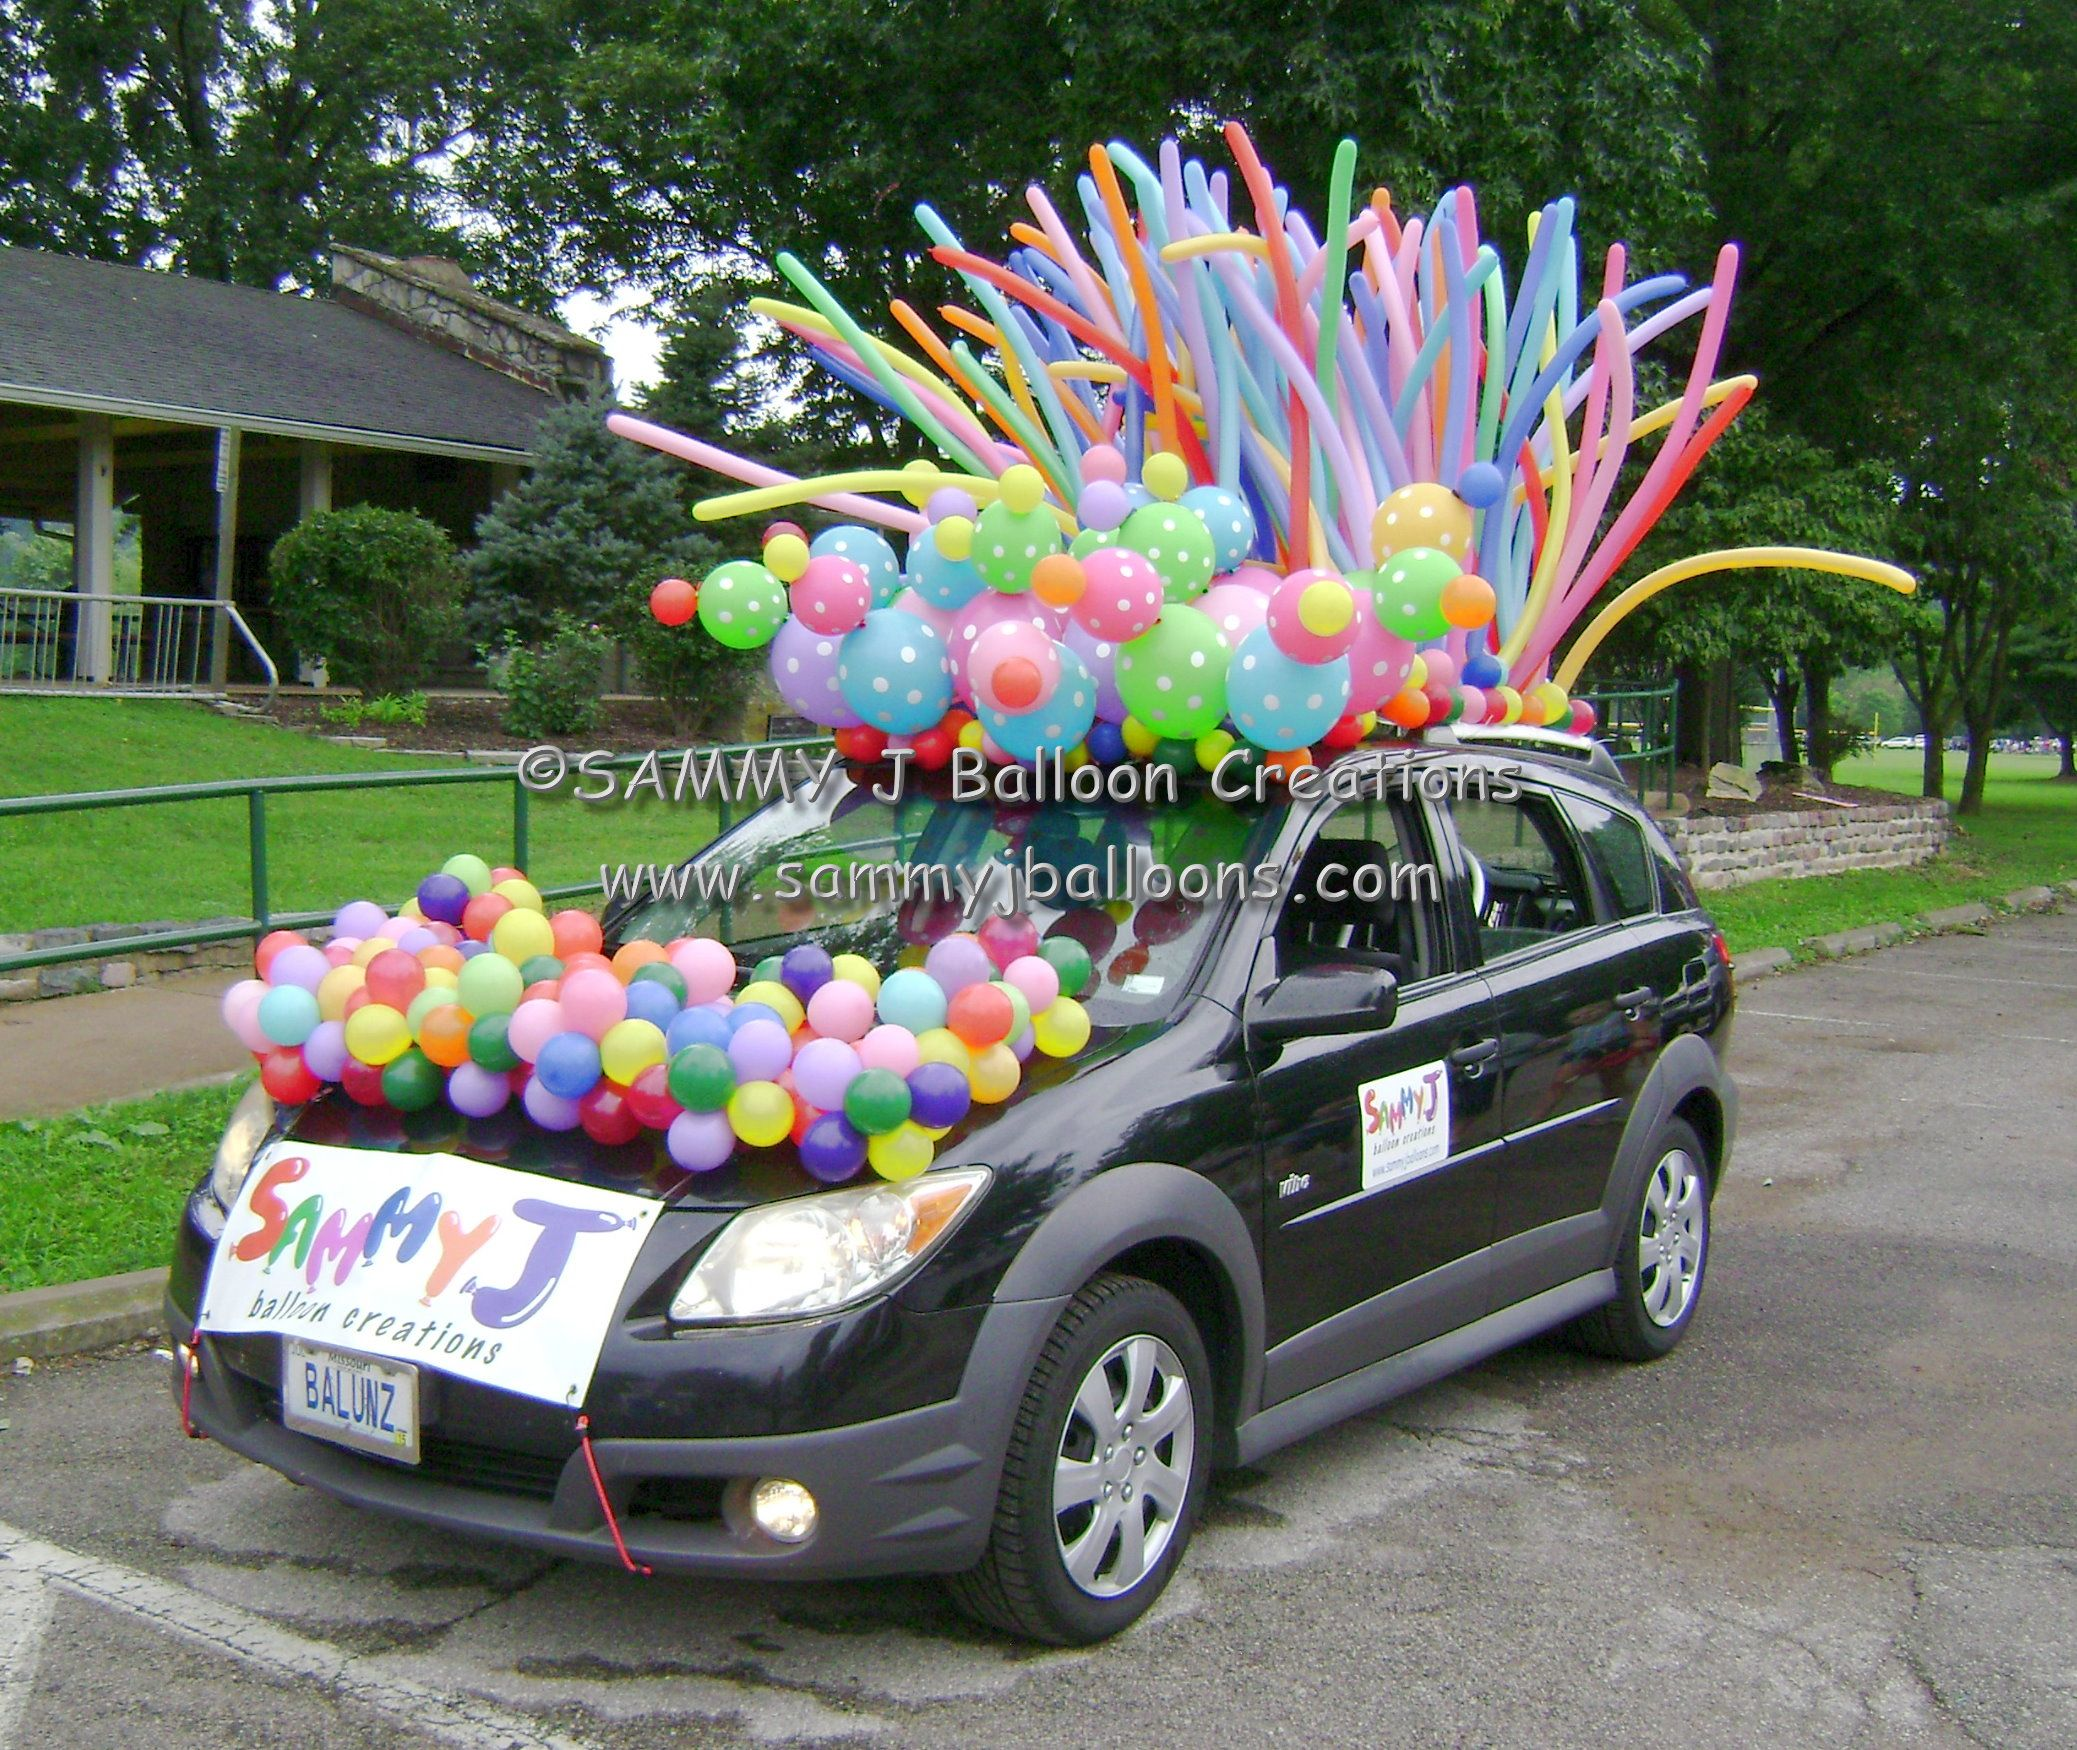 was invited to decorate my car for a parade the polka dot link o loons made all the difference wwwsammyjballoonscom